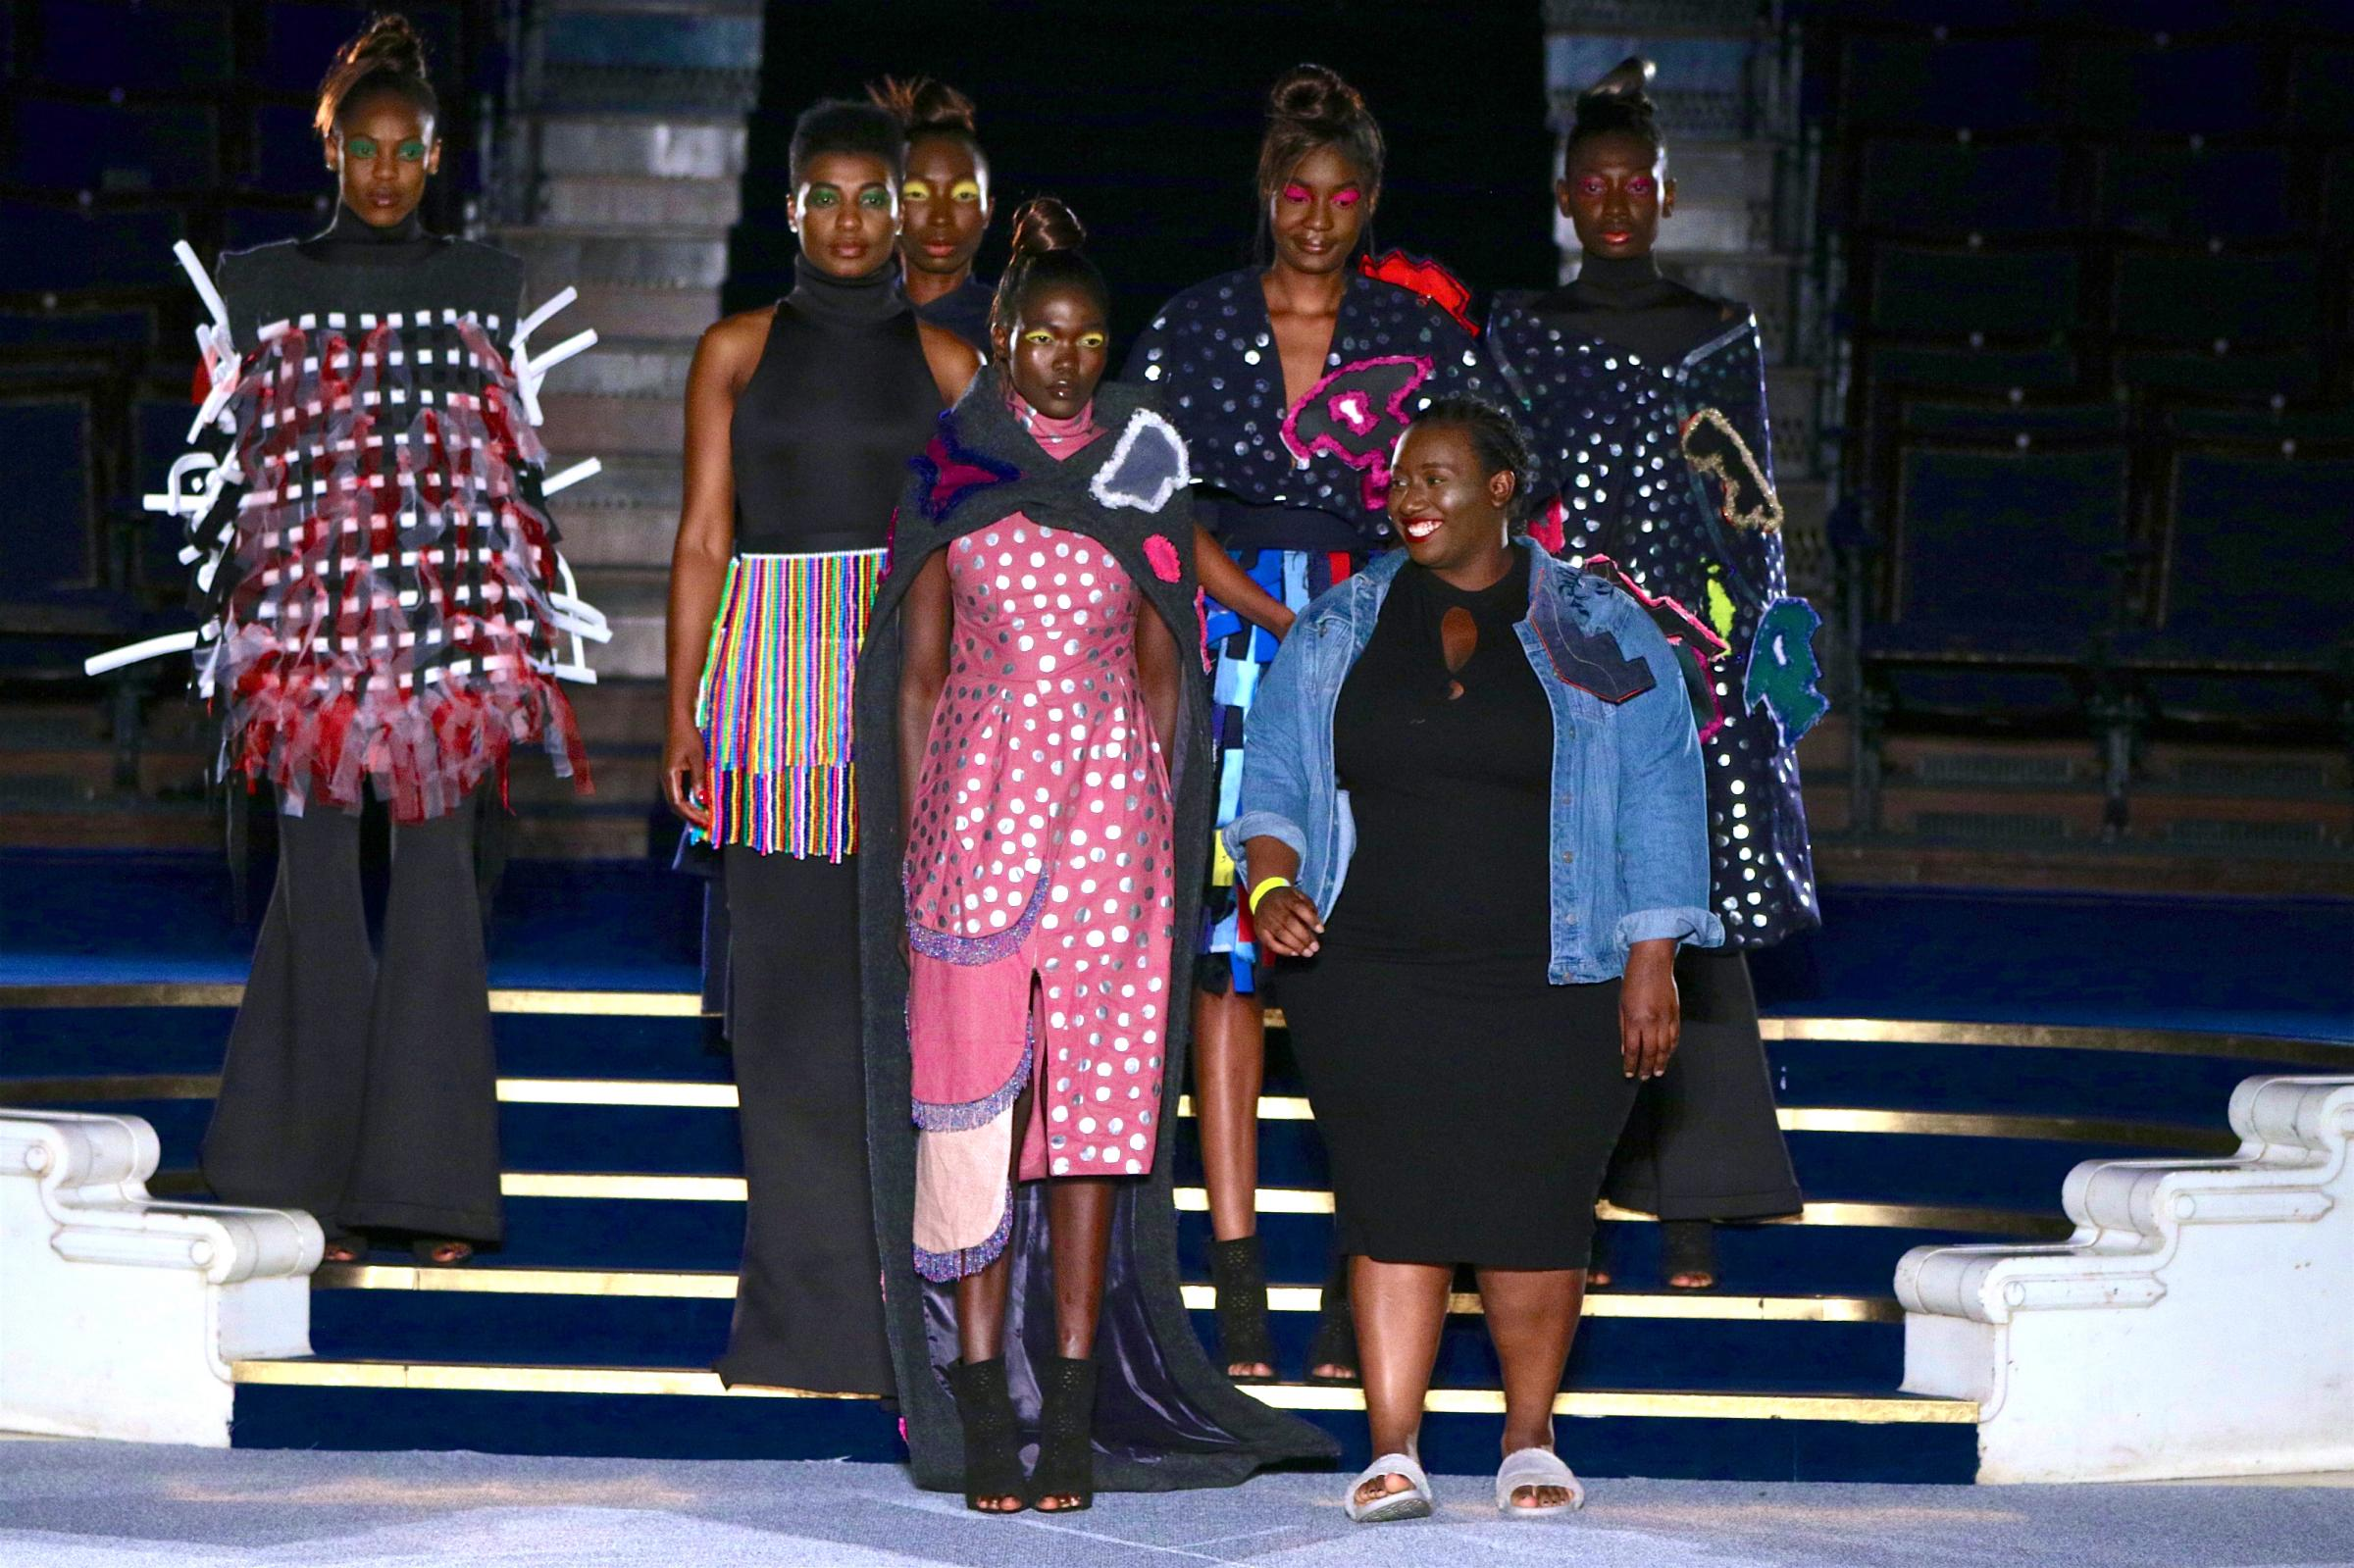 Nyasha Mabhunu (centre) with models wearing her designs on the catwalk